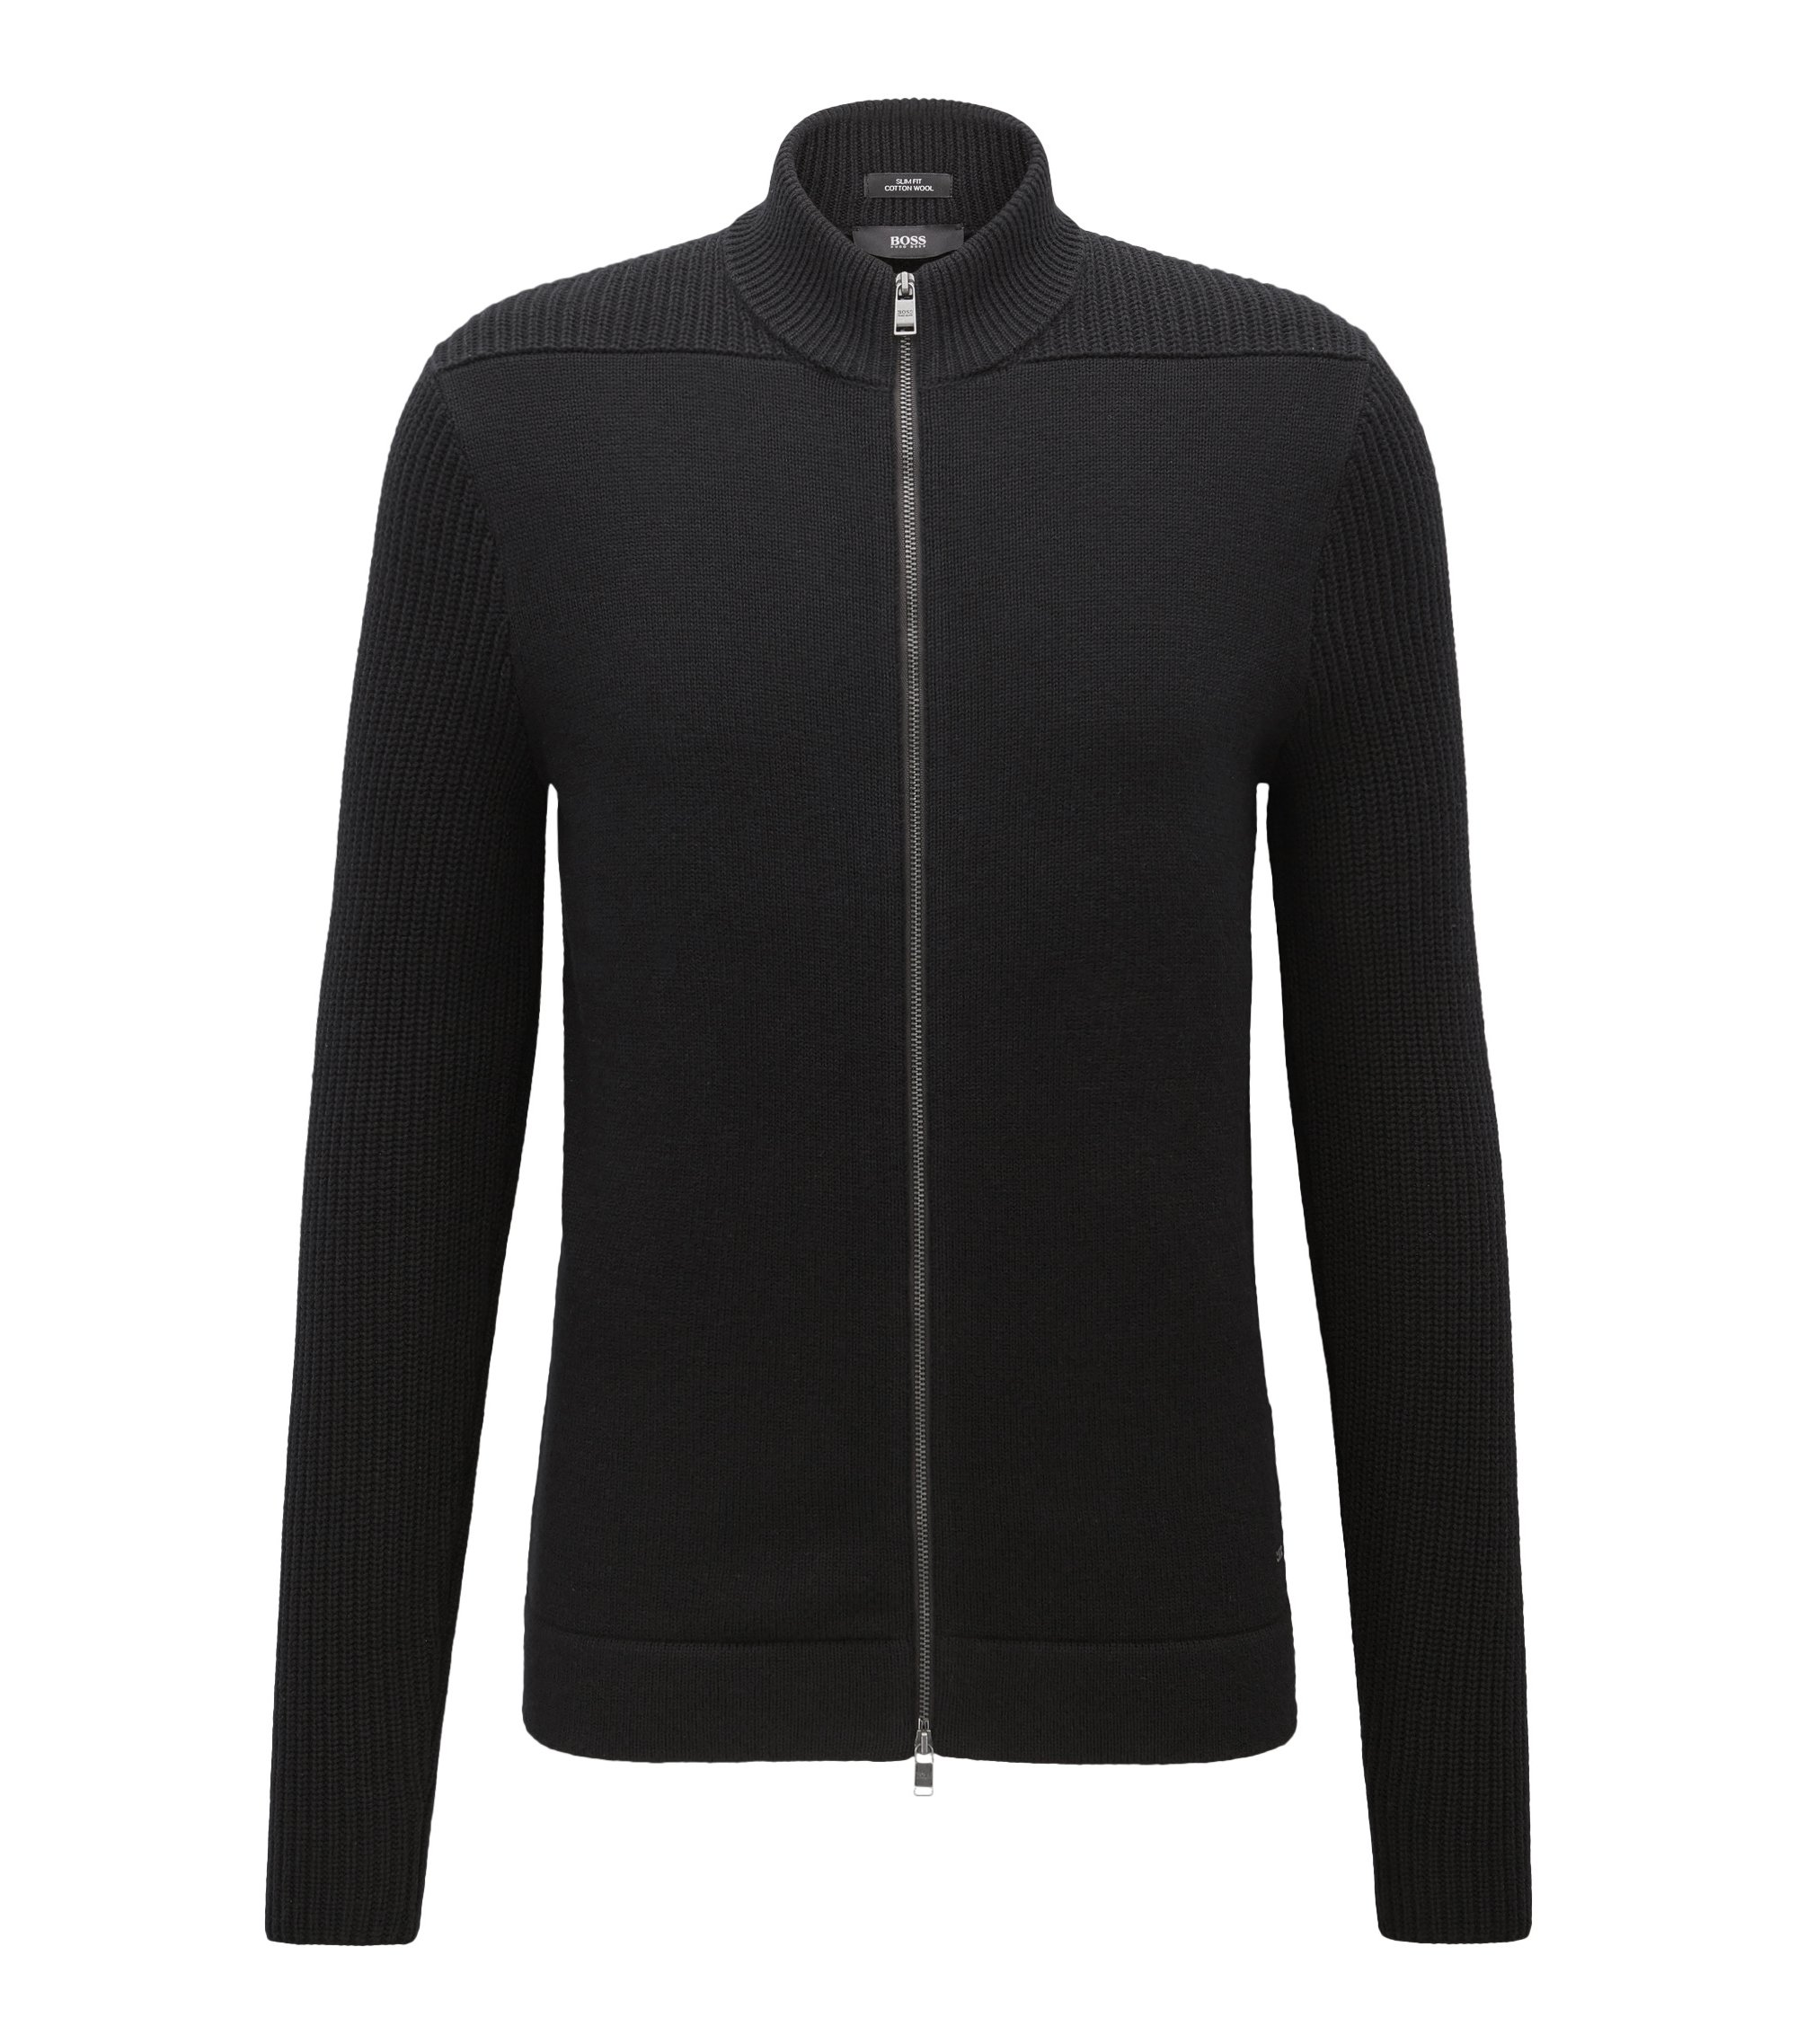 Cotton-Wool Full-Zip Jacket | Picetti, Black